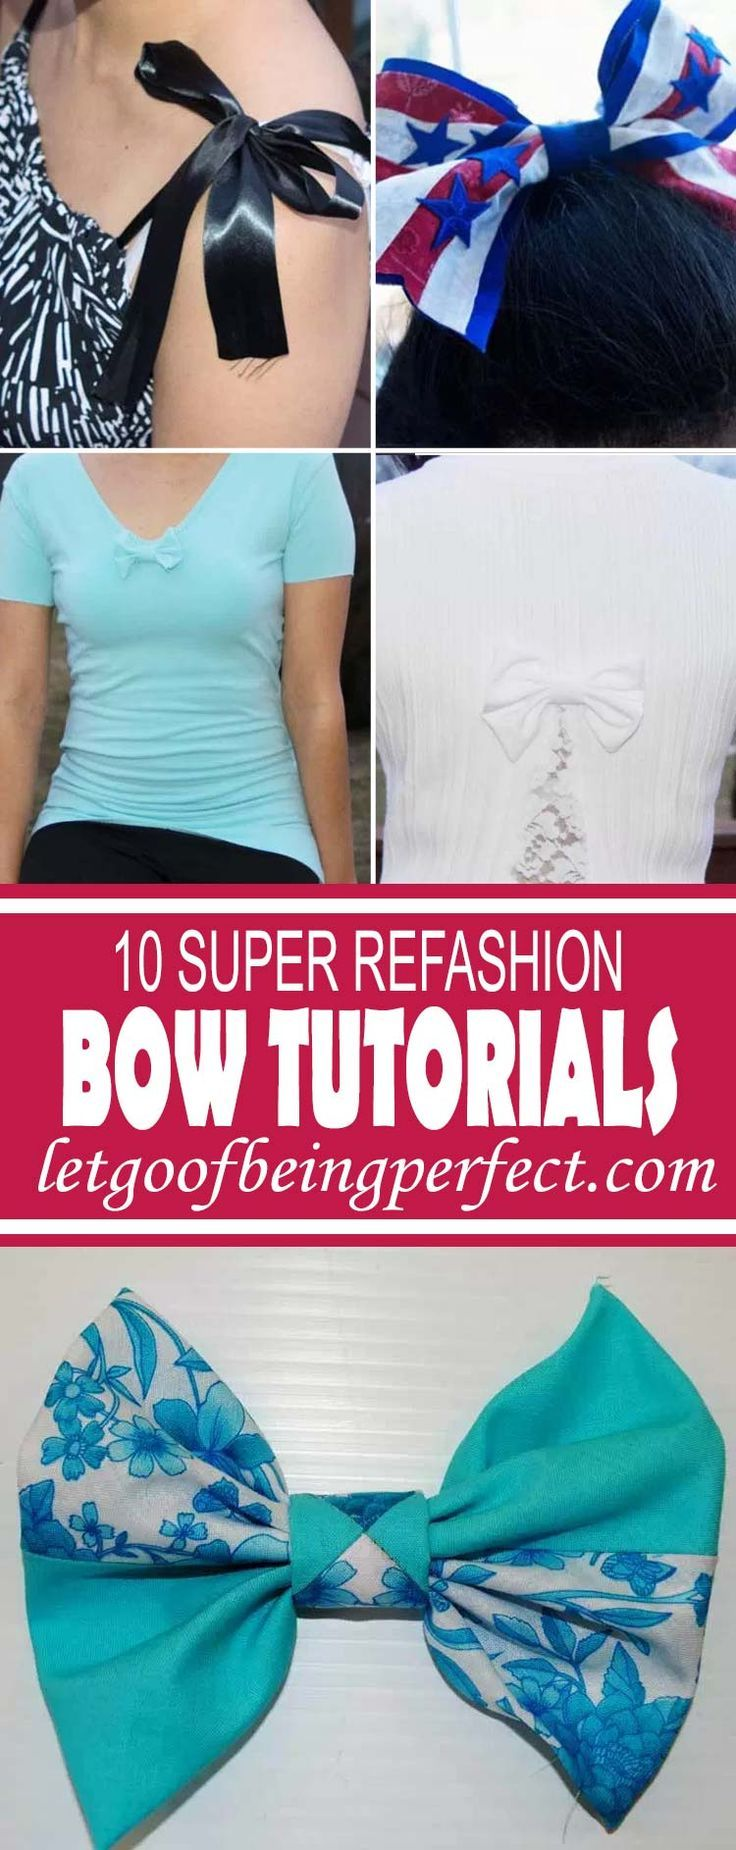 10 Super Bow Refashion Tutorials - 10 super step-by-step DIY sewing tutorials with clear photographs and instructions. Upcycle some old t-shirts, sweaters, and other fabrics to make these cute bow outfits for yourself or your home.  A great, low-cost way to change up your wardrobe or home accessories. Remake, redo, reuse, and recycle to help save money and save the planet. Explore the web site...